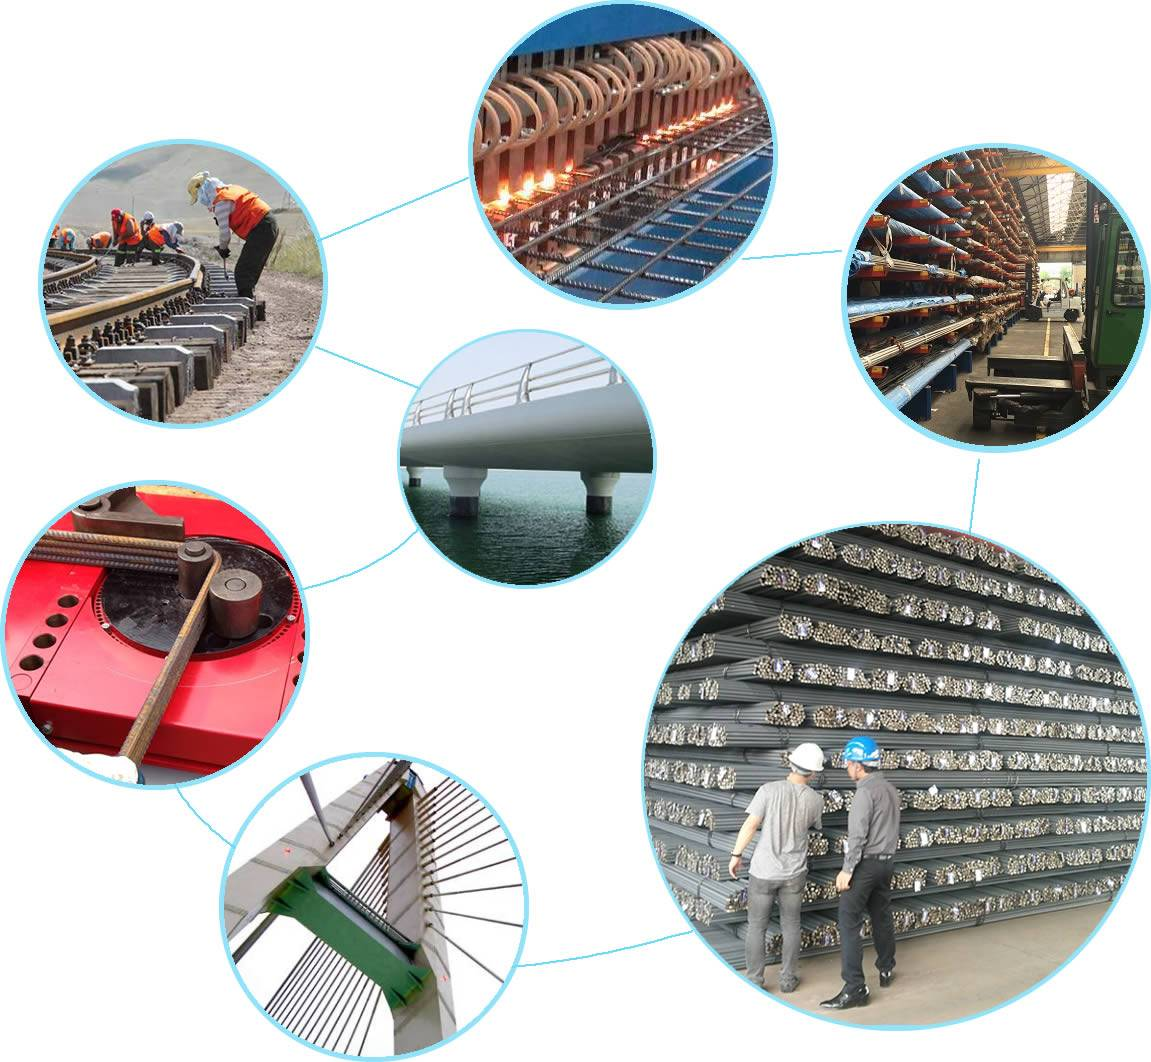 A picture shows our reinforcing bars in warehouse, rebar bending, and rebar used in railway and bridge construction.